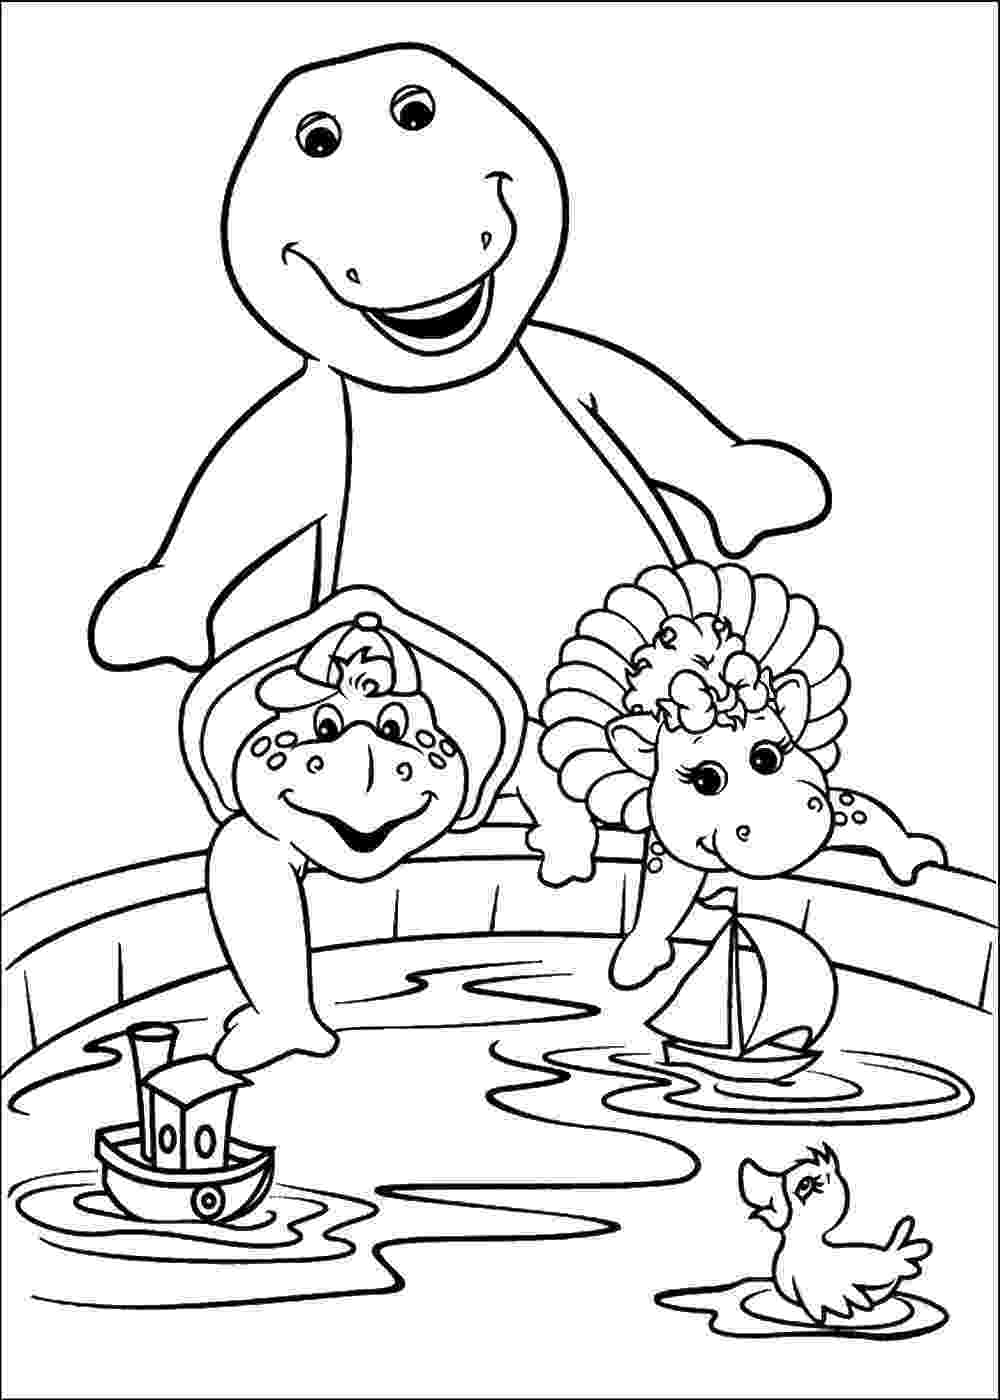 printable coloring pictures peacock coloring pages to download and print for free pictures coloring printable